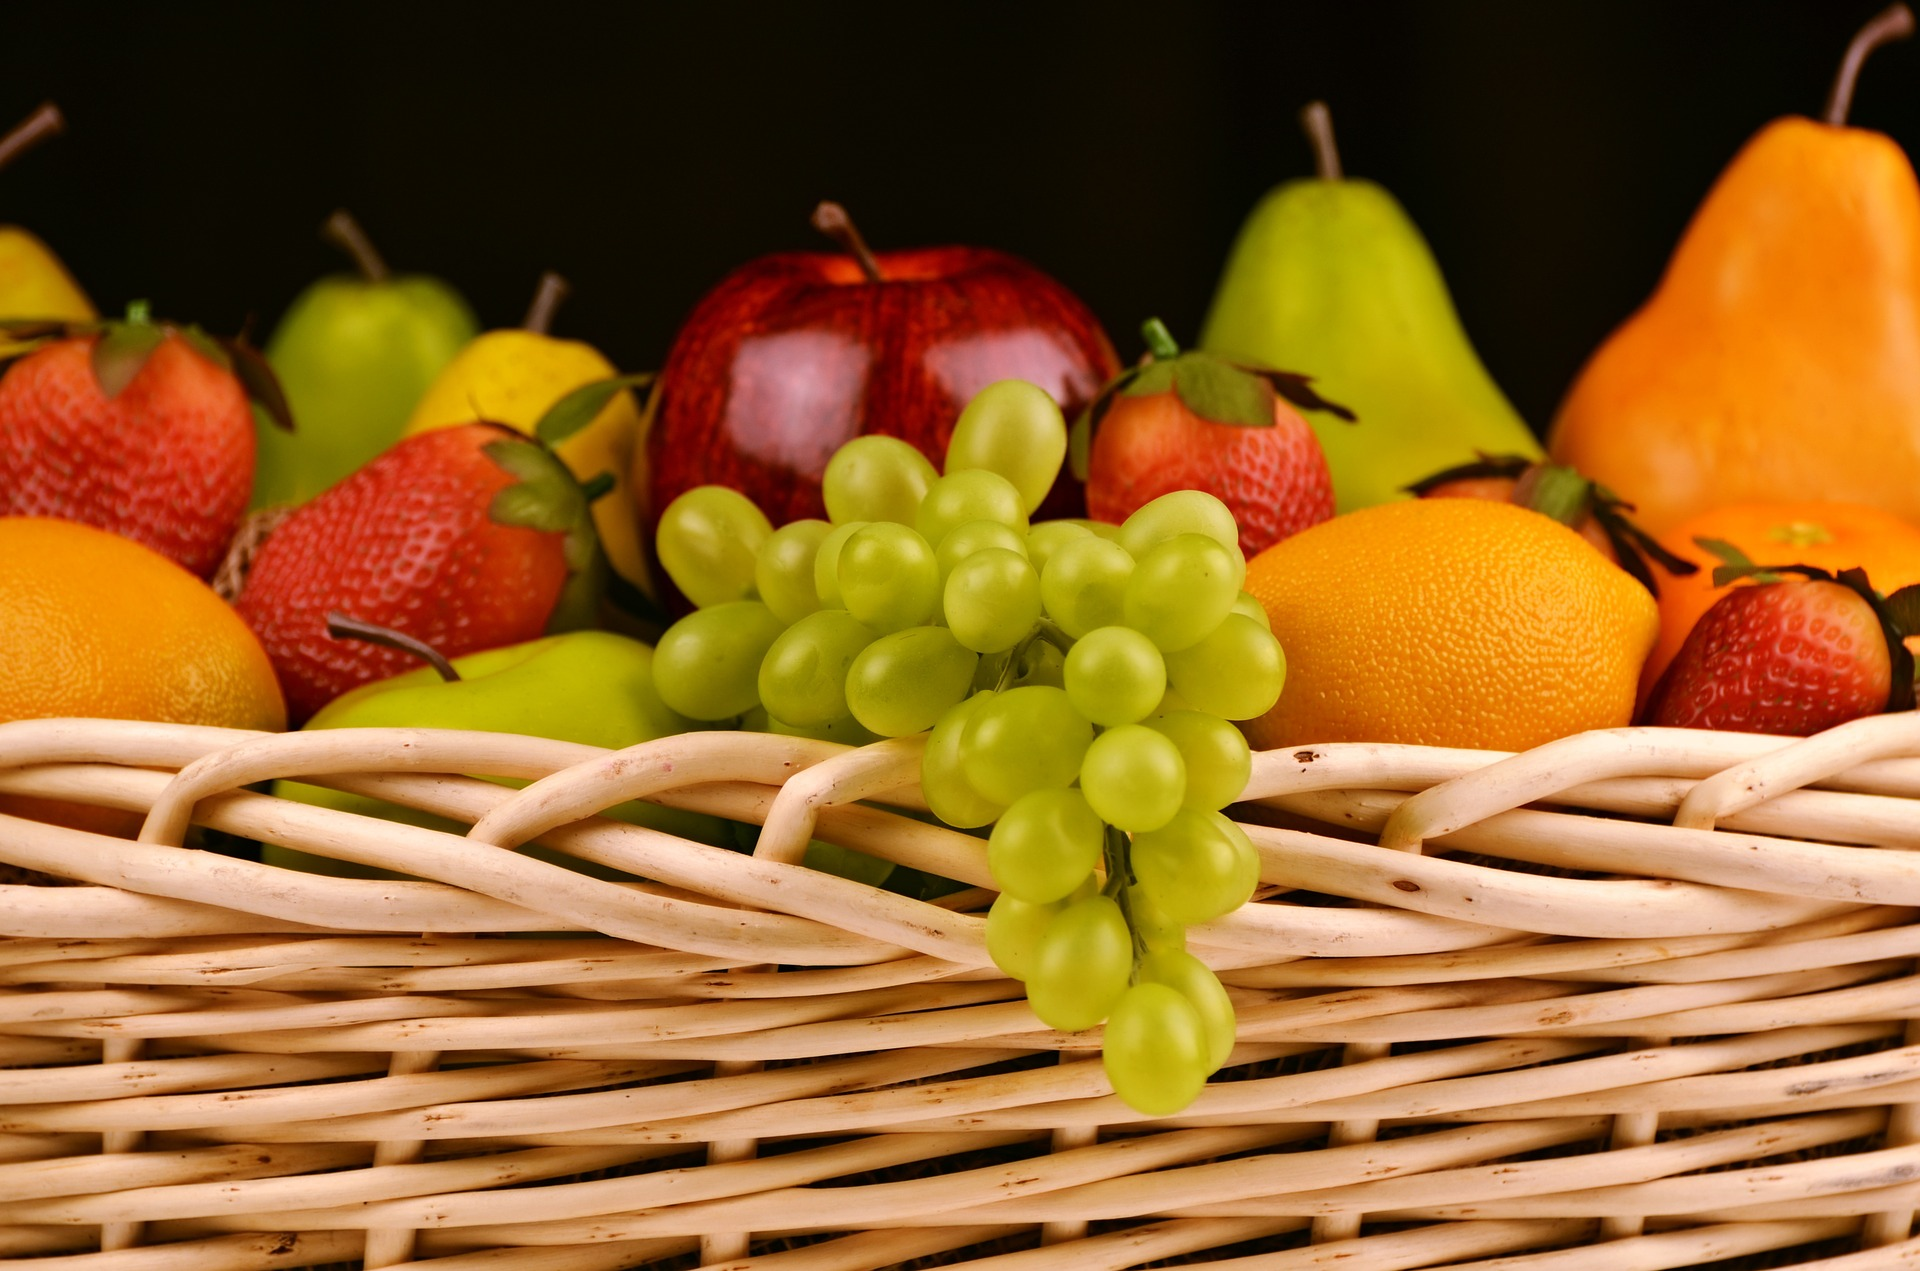 fruit-basket-1114060_1920.jpg